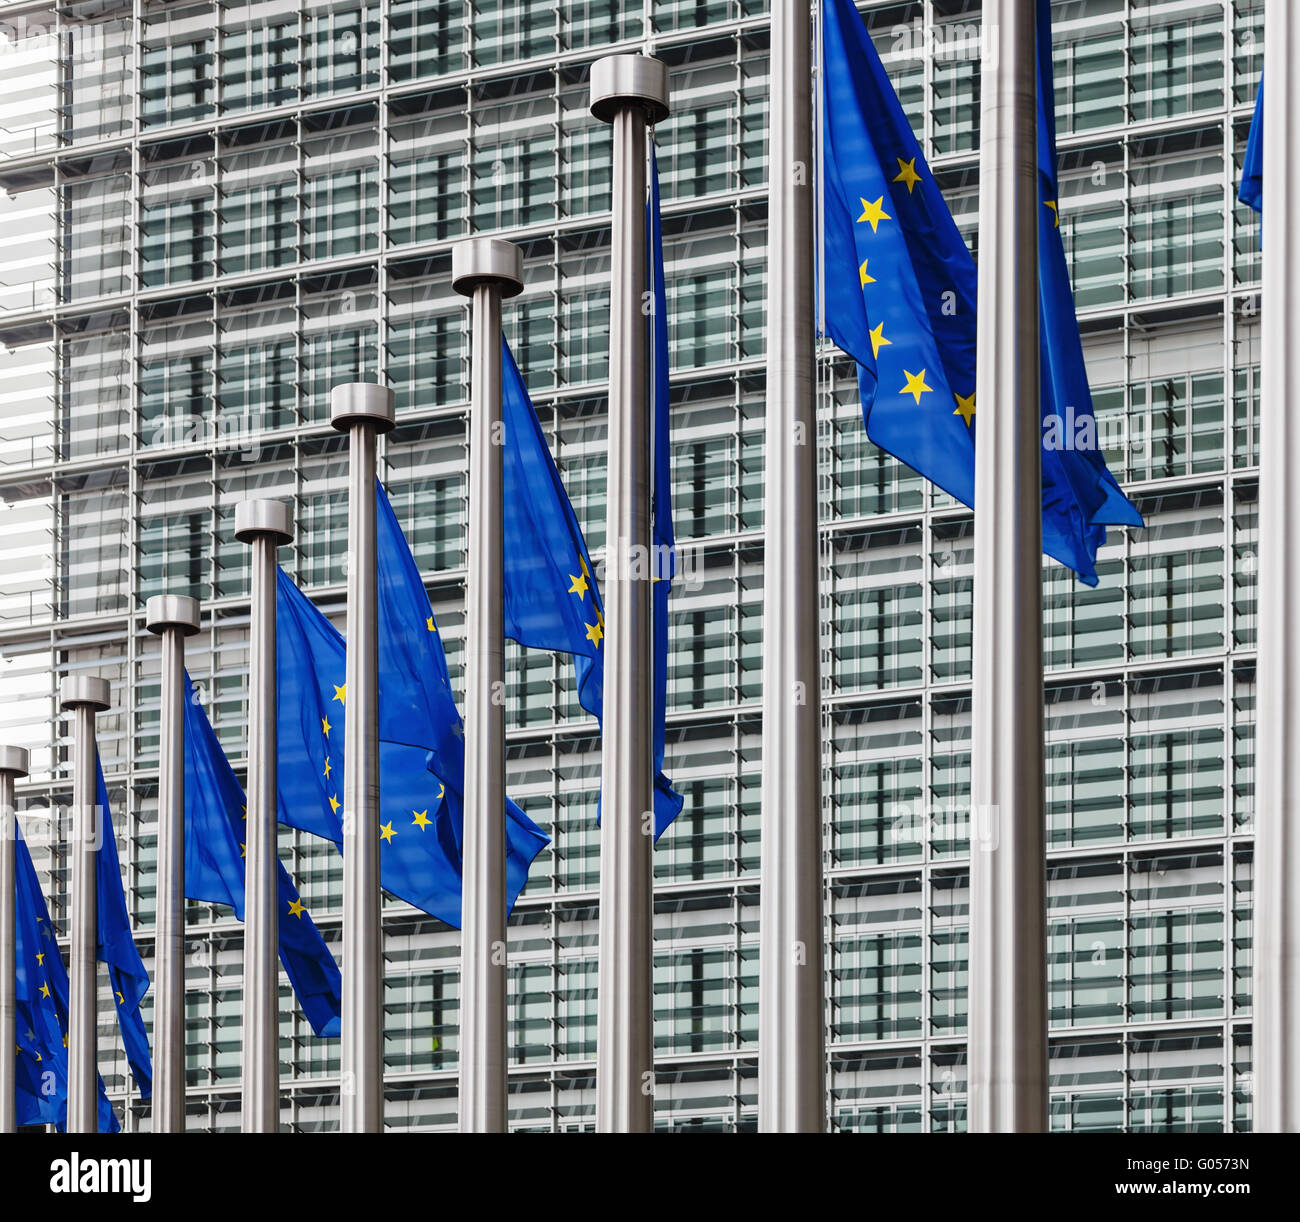 EU flags in front of berlaymont building - Stock Image